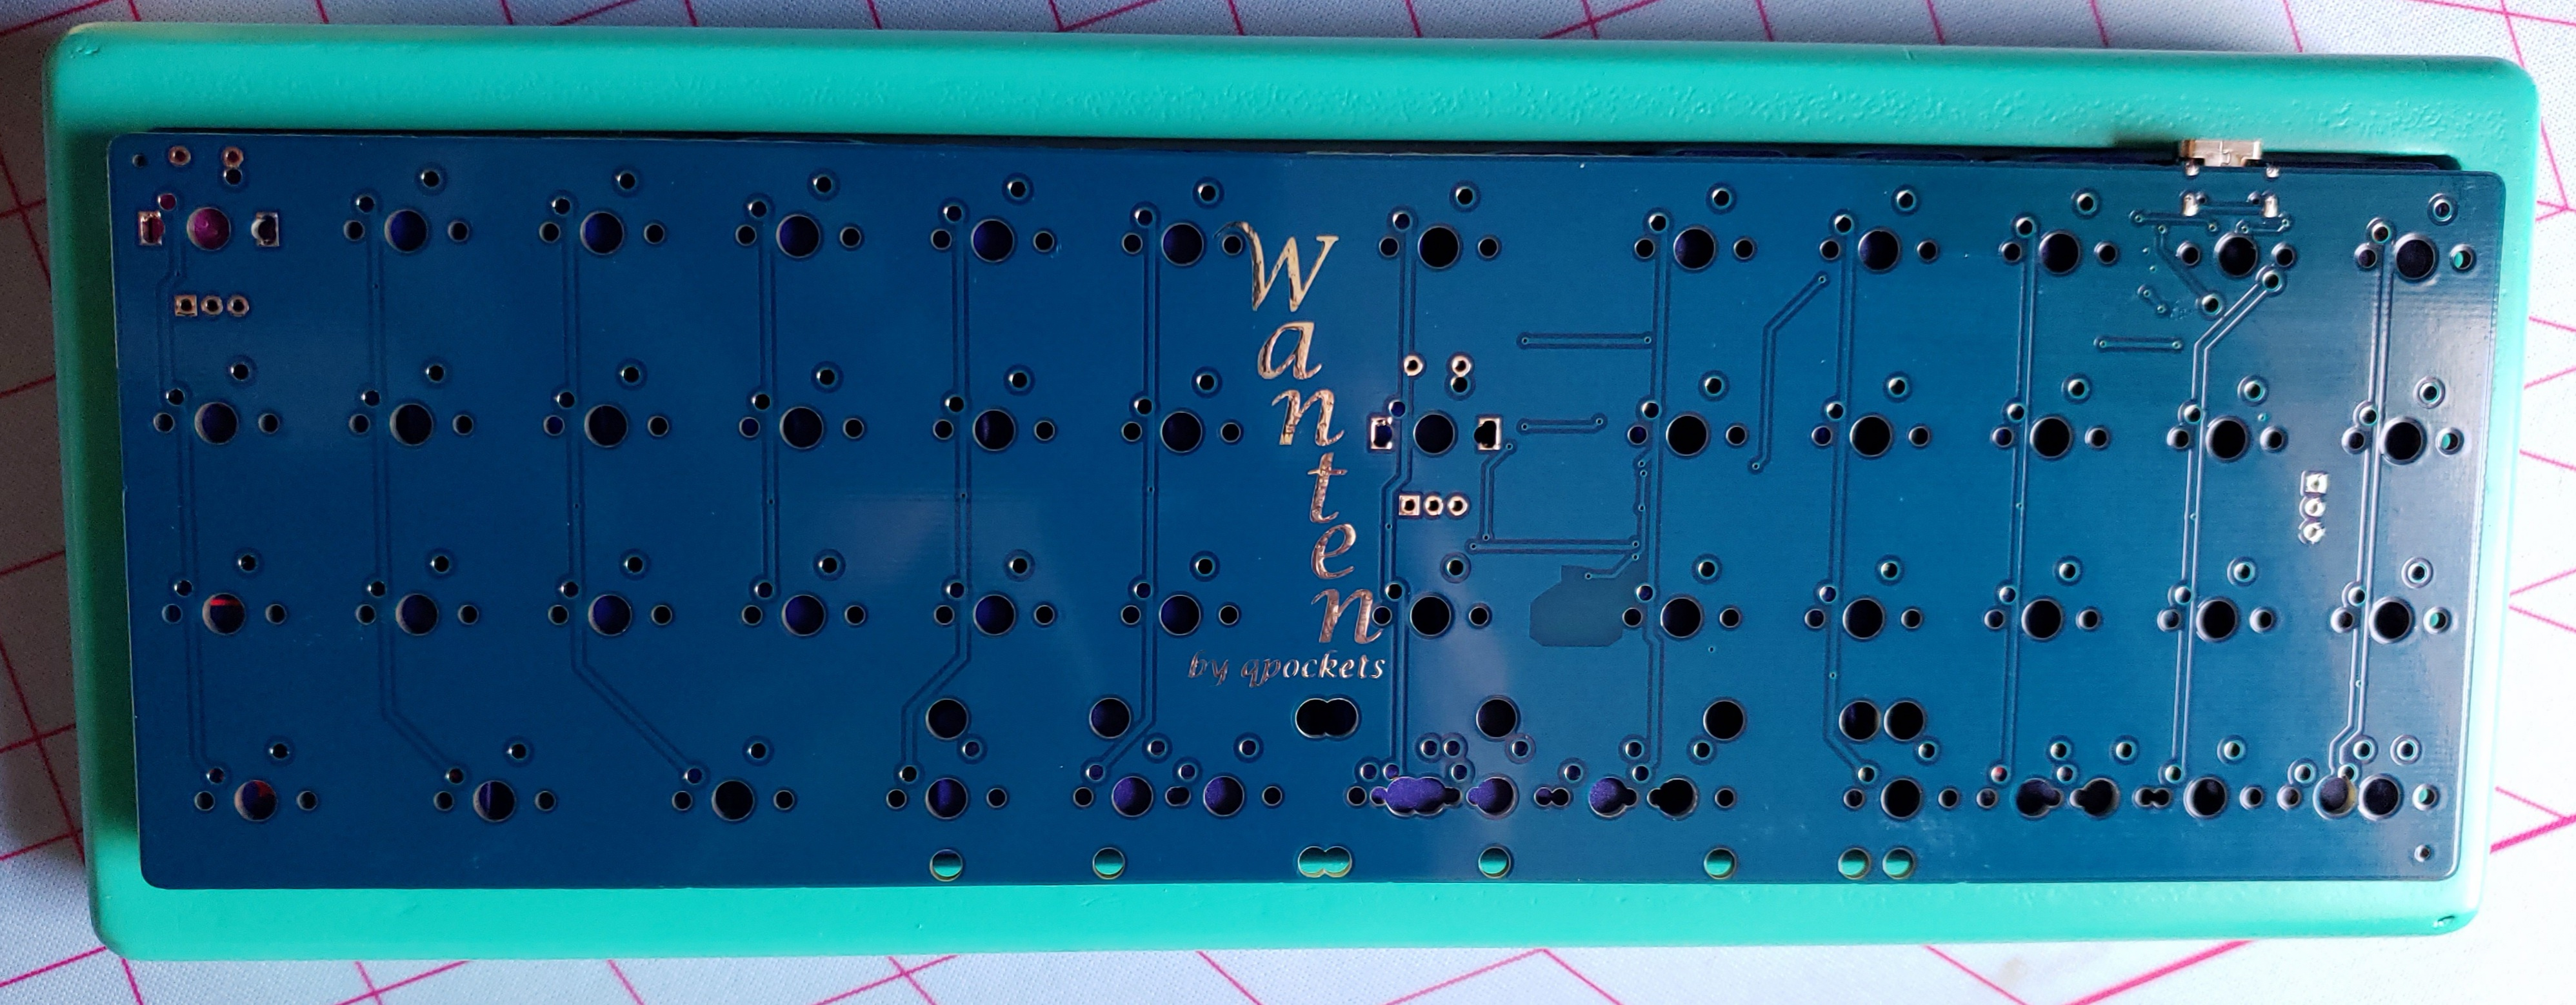 Front of the prototype Wanten PCB